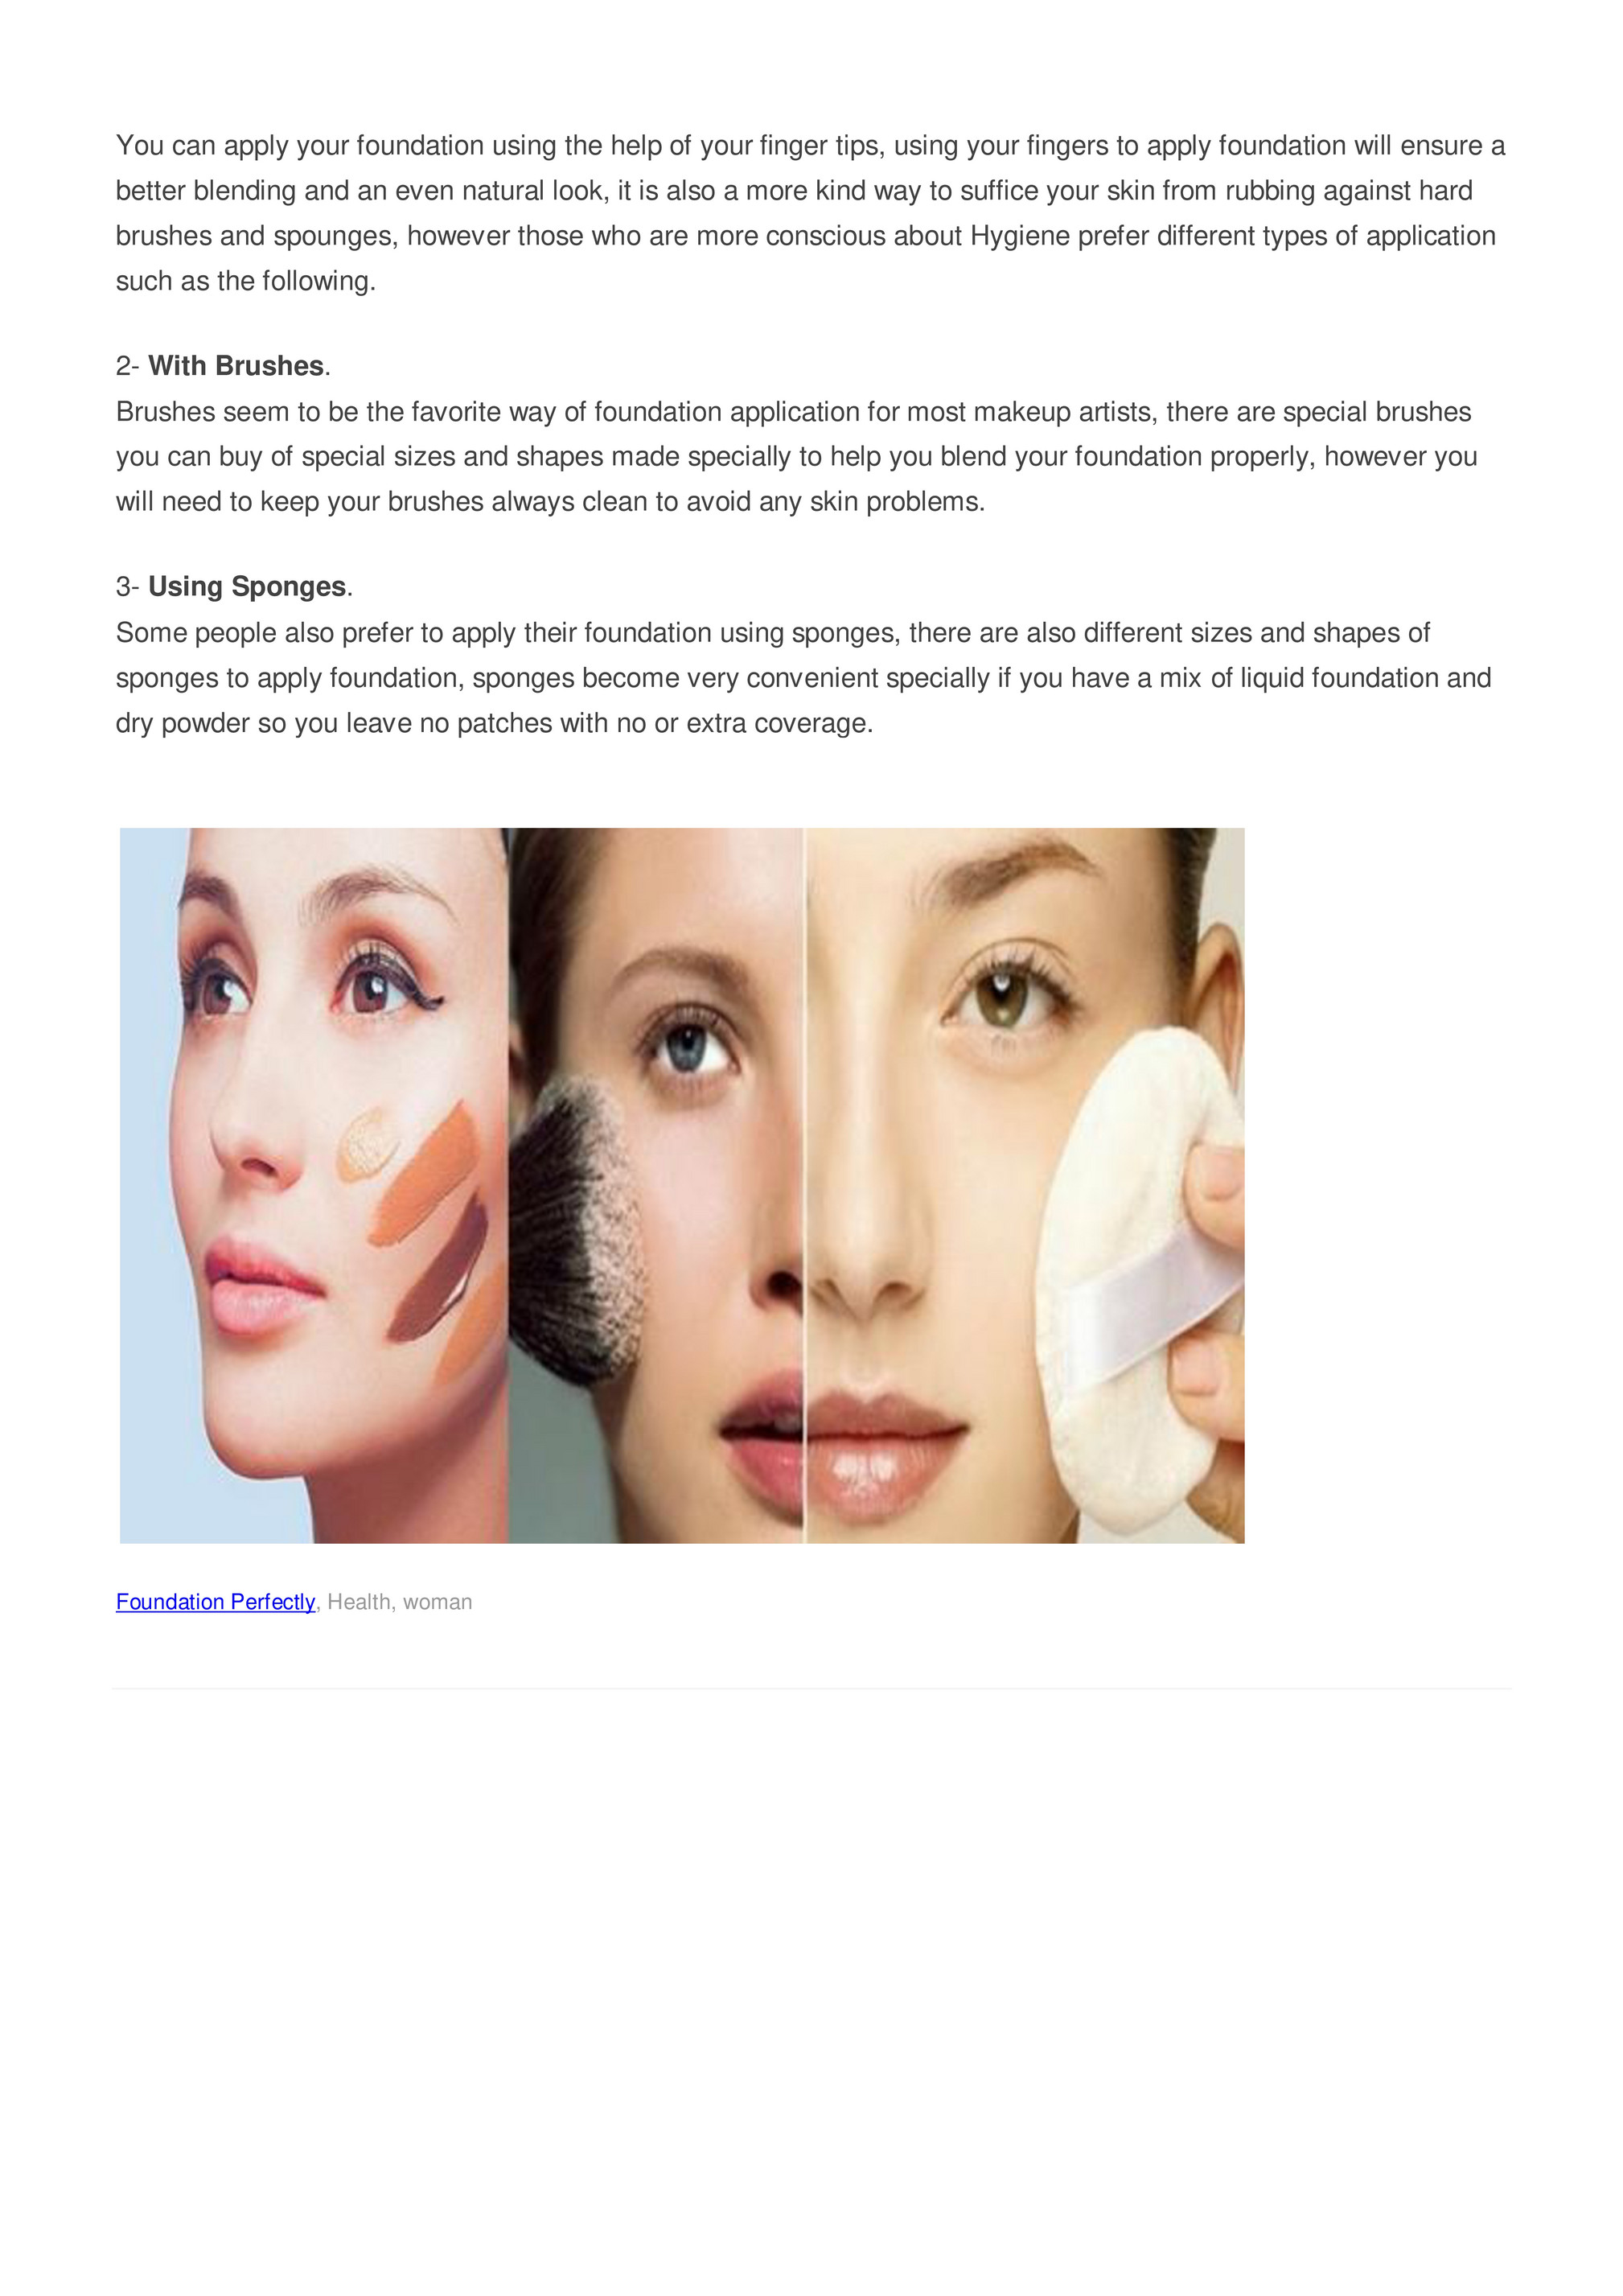 My Publications Three Ways To Apply Your Foundation Perfectly Page 1 Created With Publitas Com